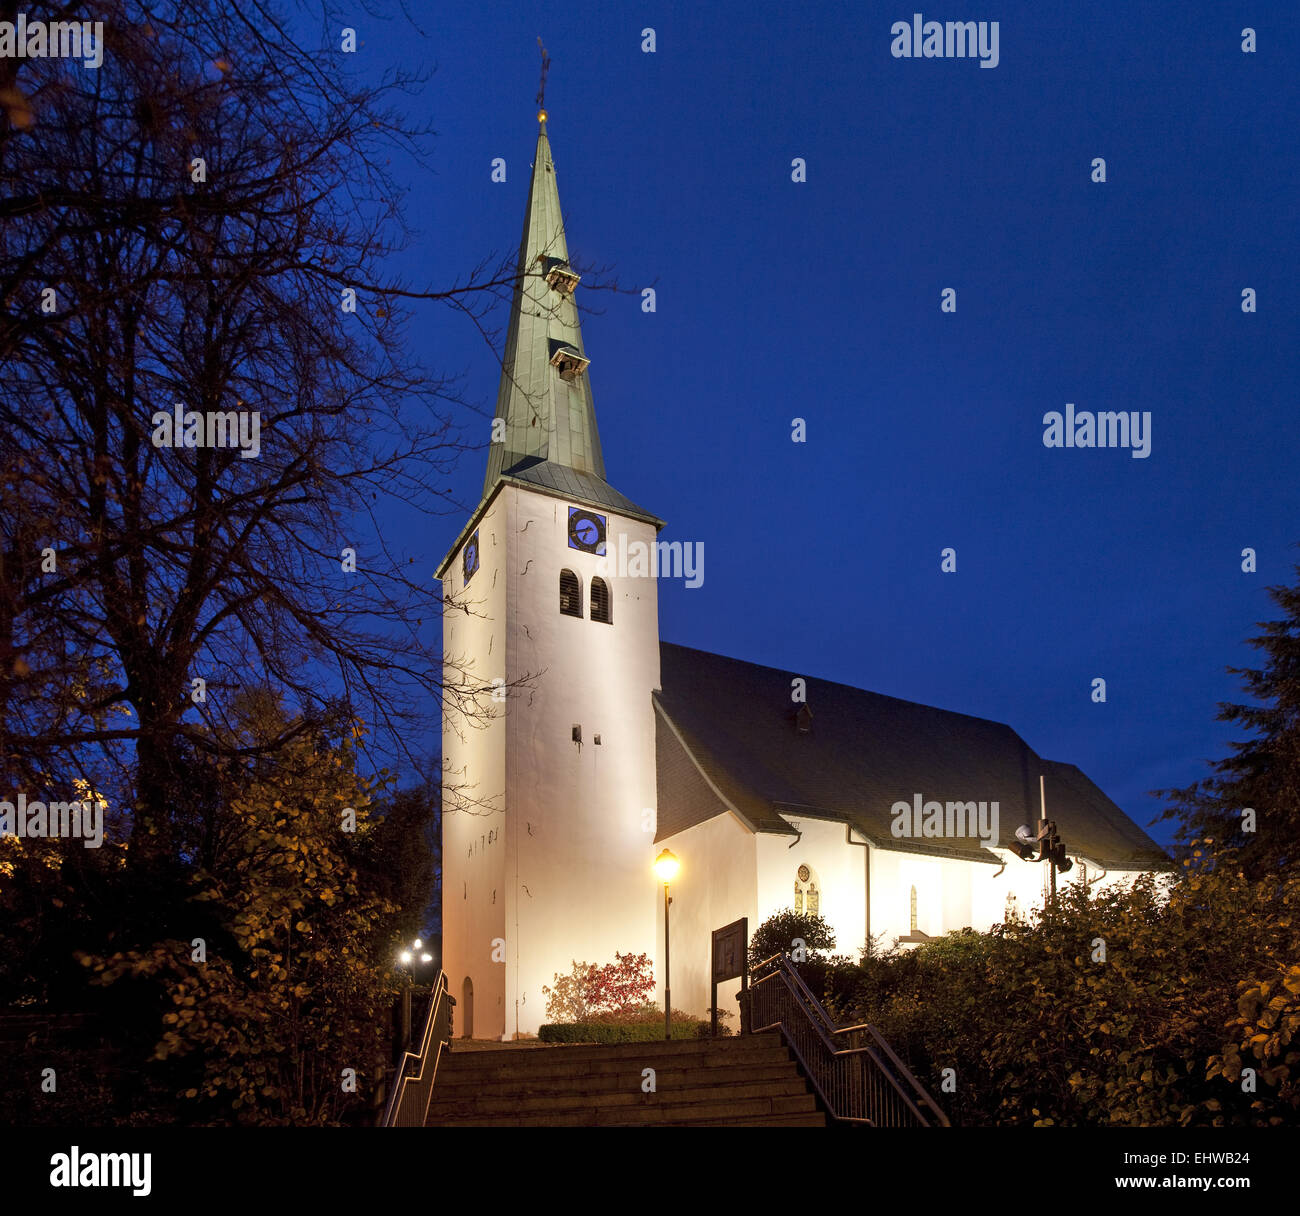 The Apostles Church in Herscheid, Germany. - Stock Image